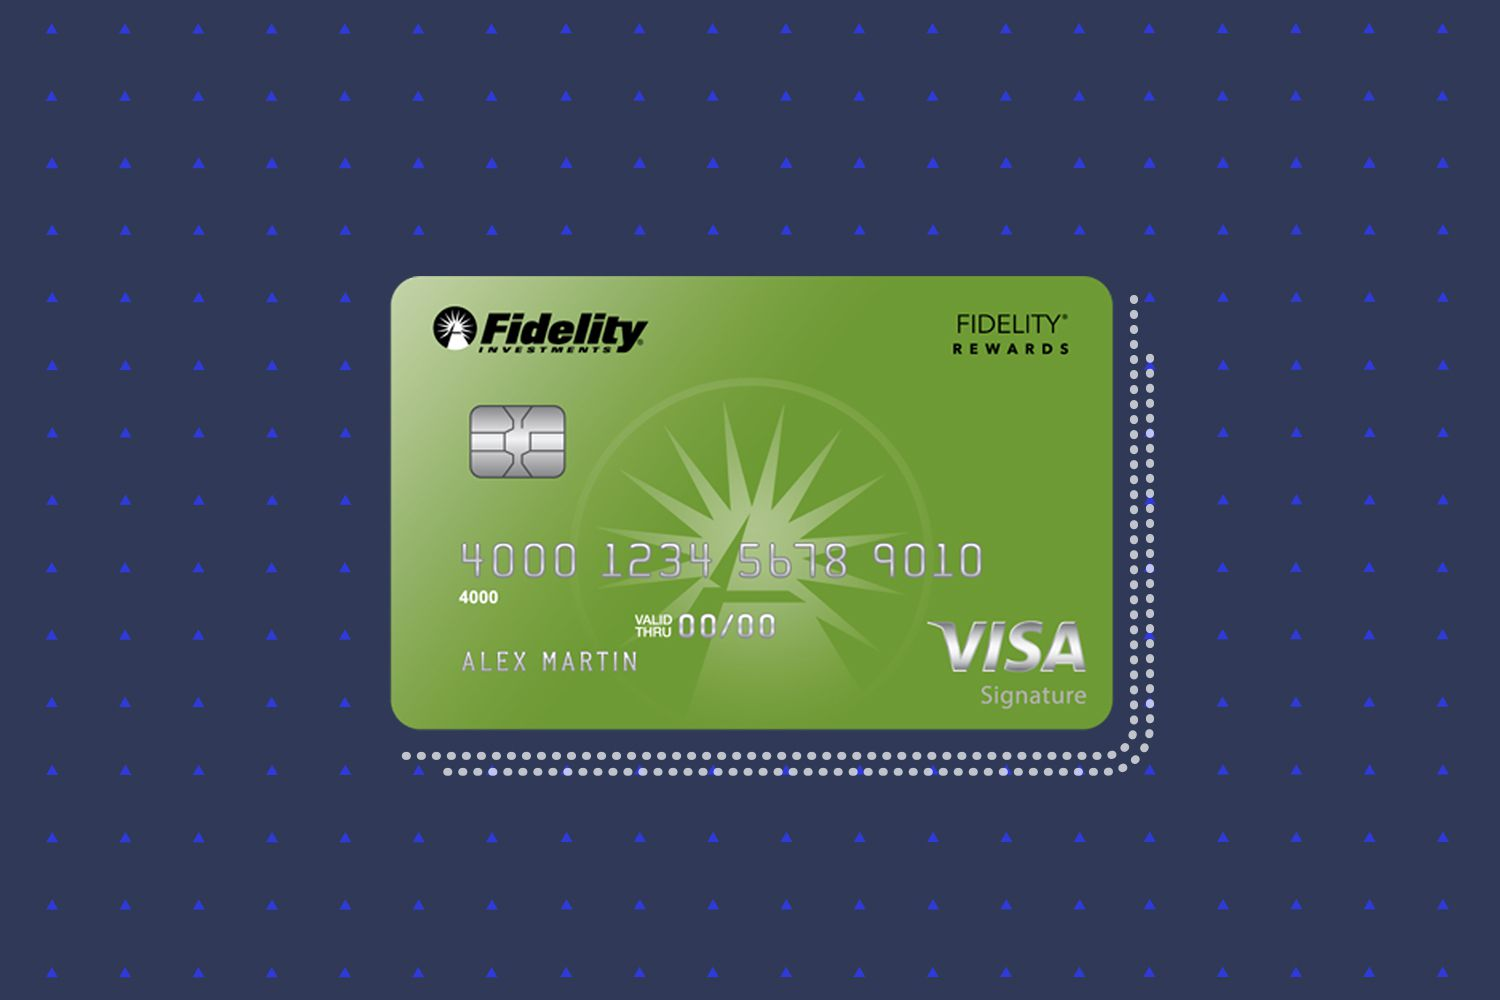 Fidelity investment rewards american express extended warranty joel investments cleveland ms weather